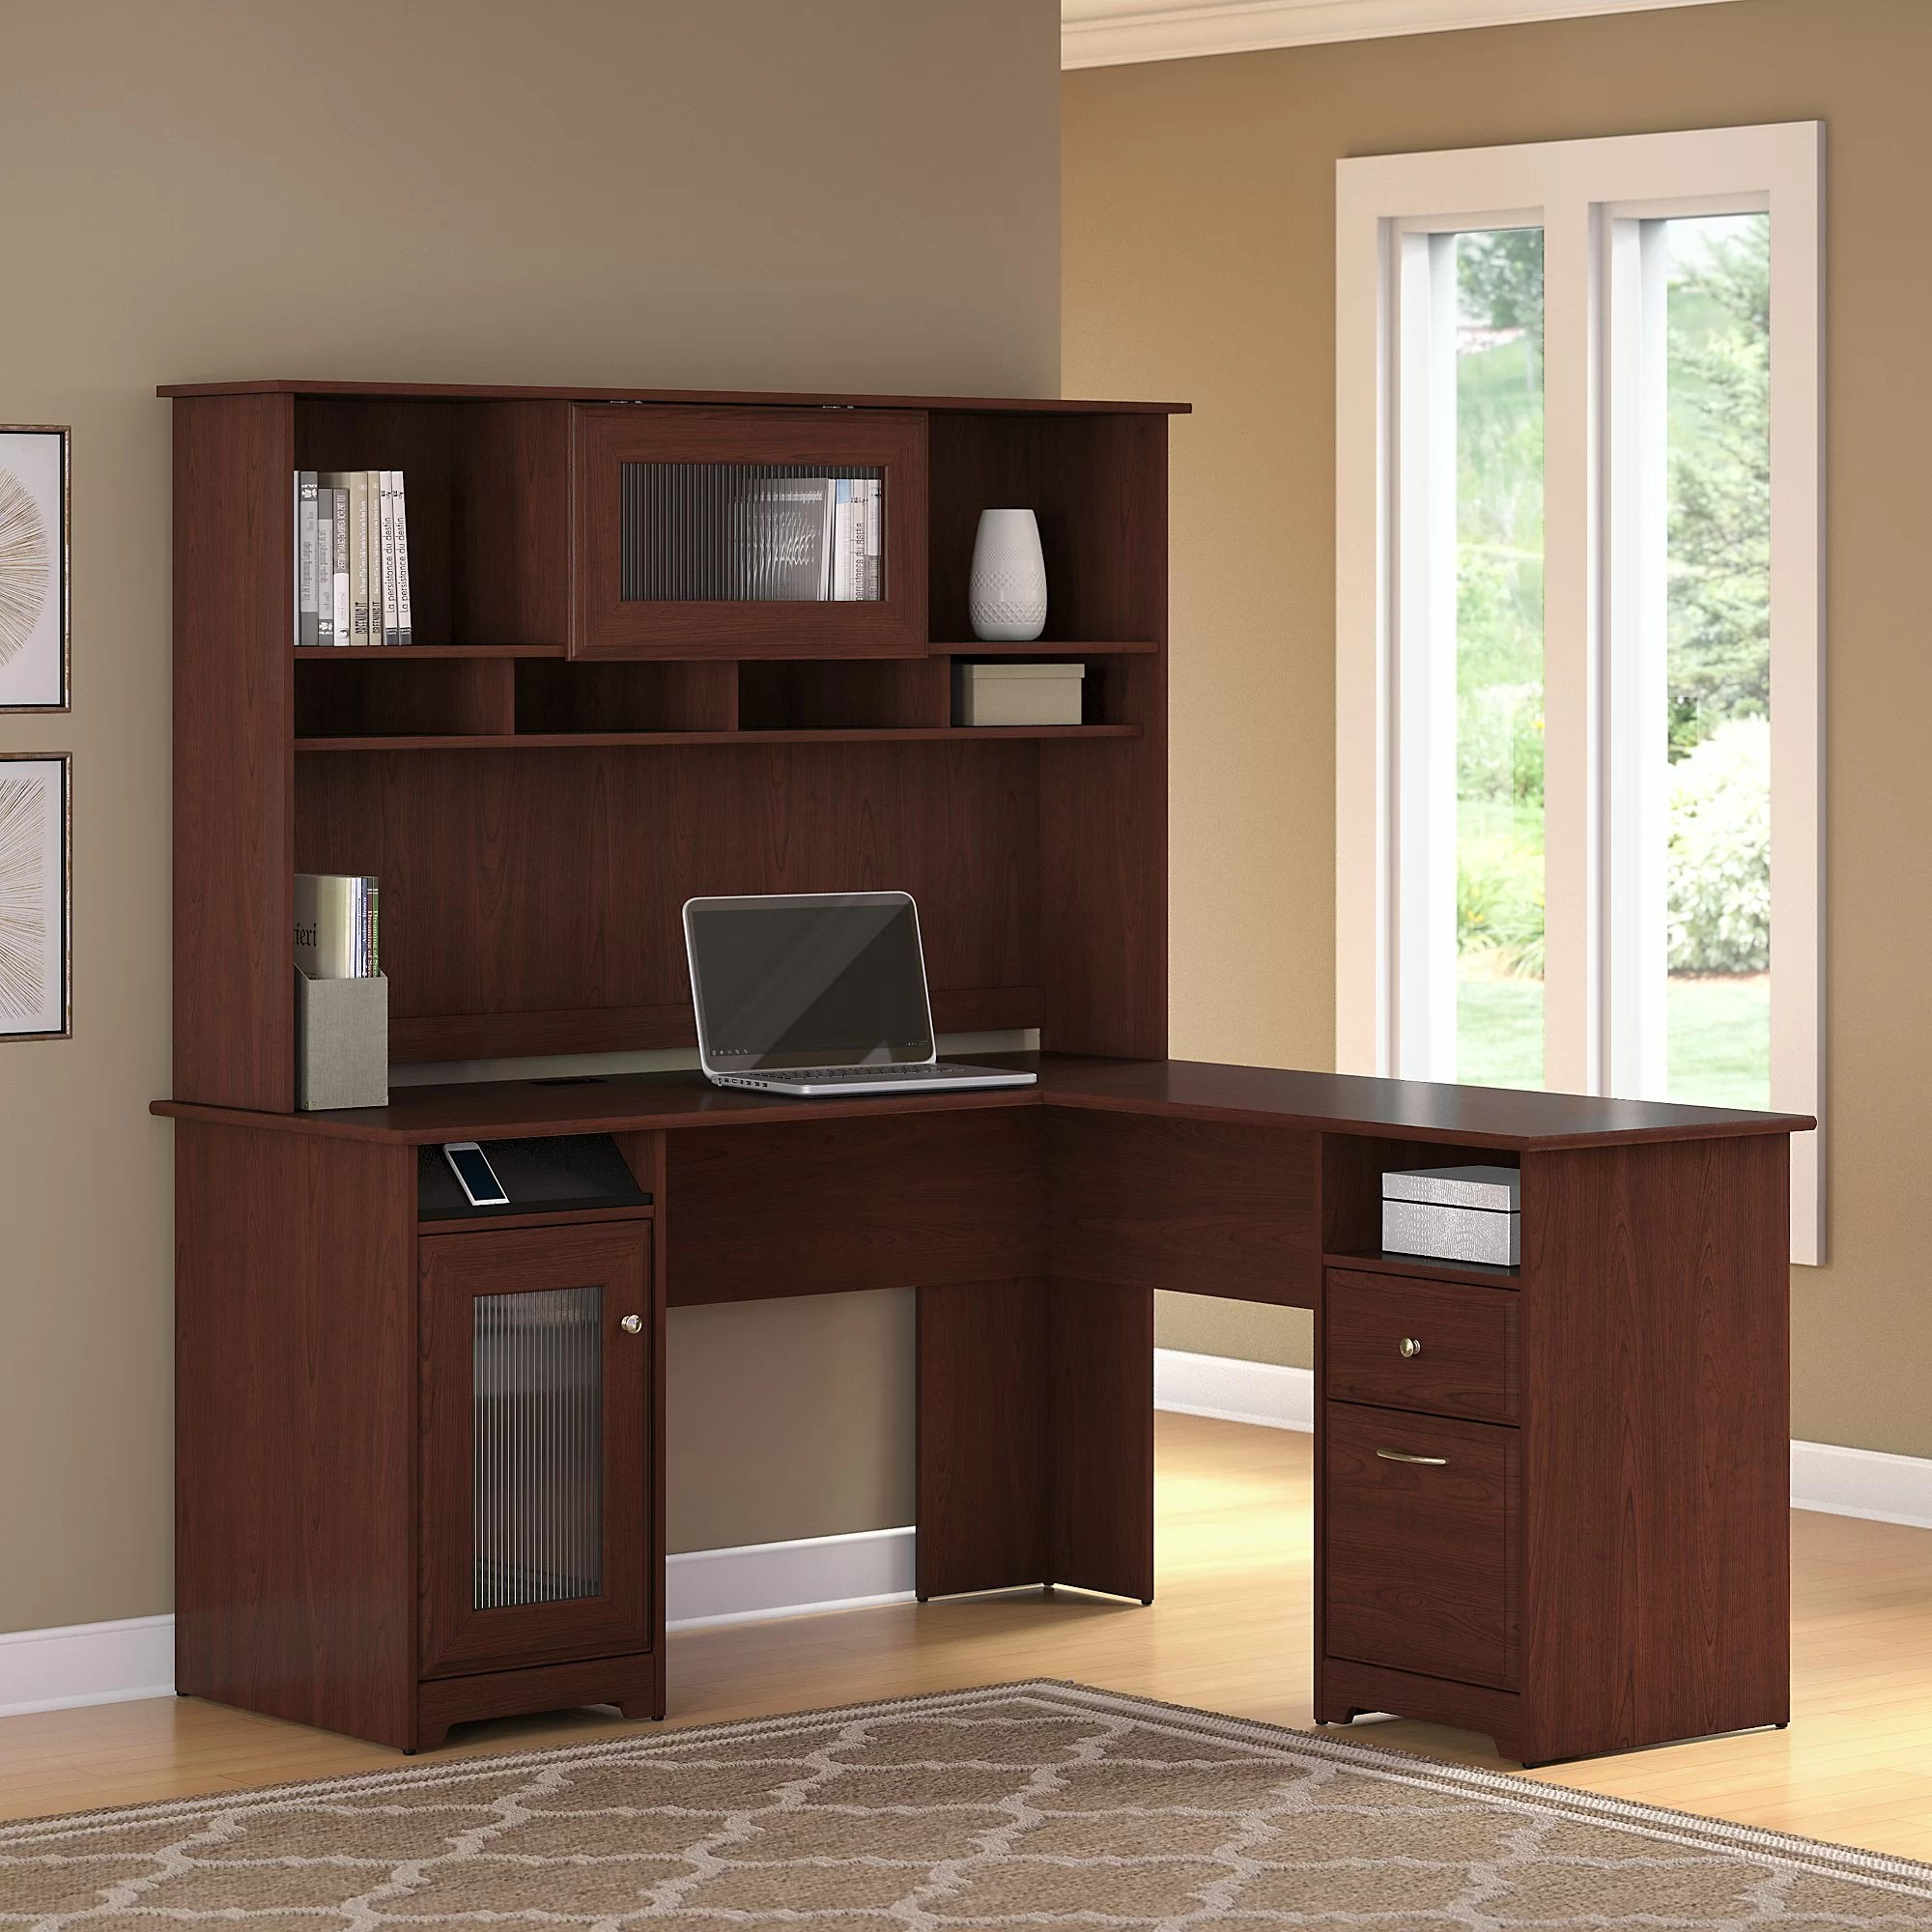 Executive L Shaped Desk Toledo L Shaped Executive Desk With Hutch